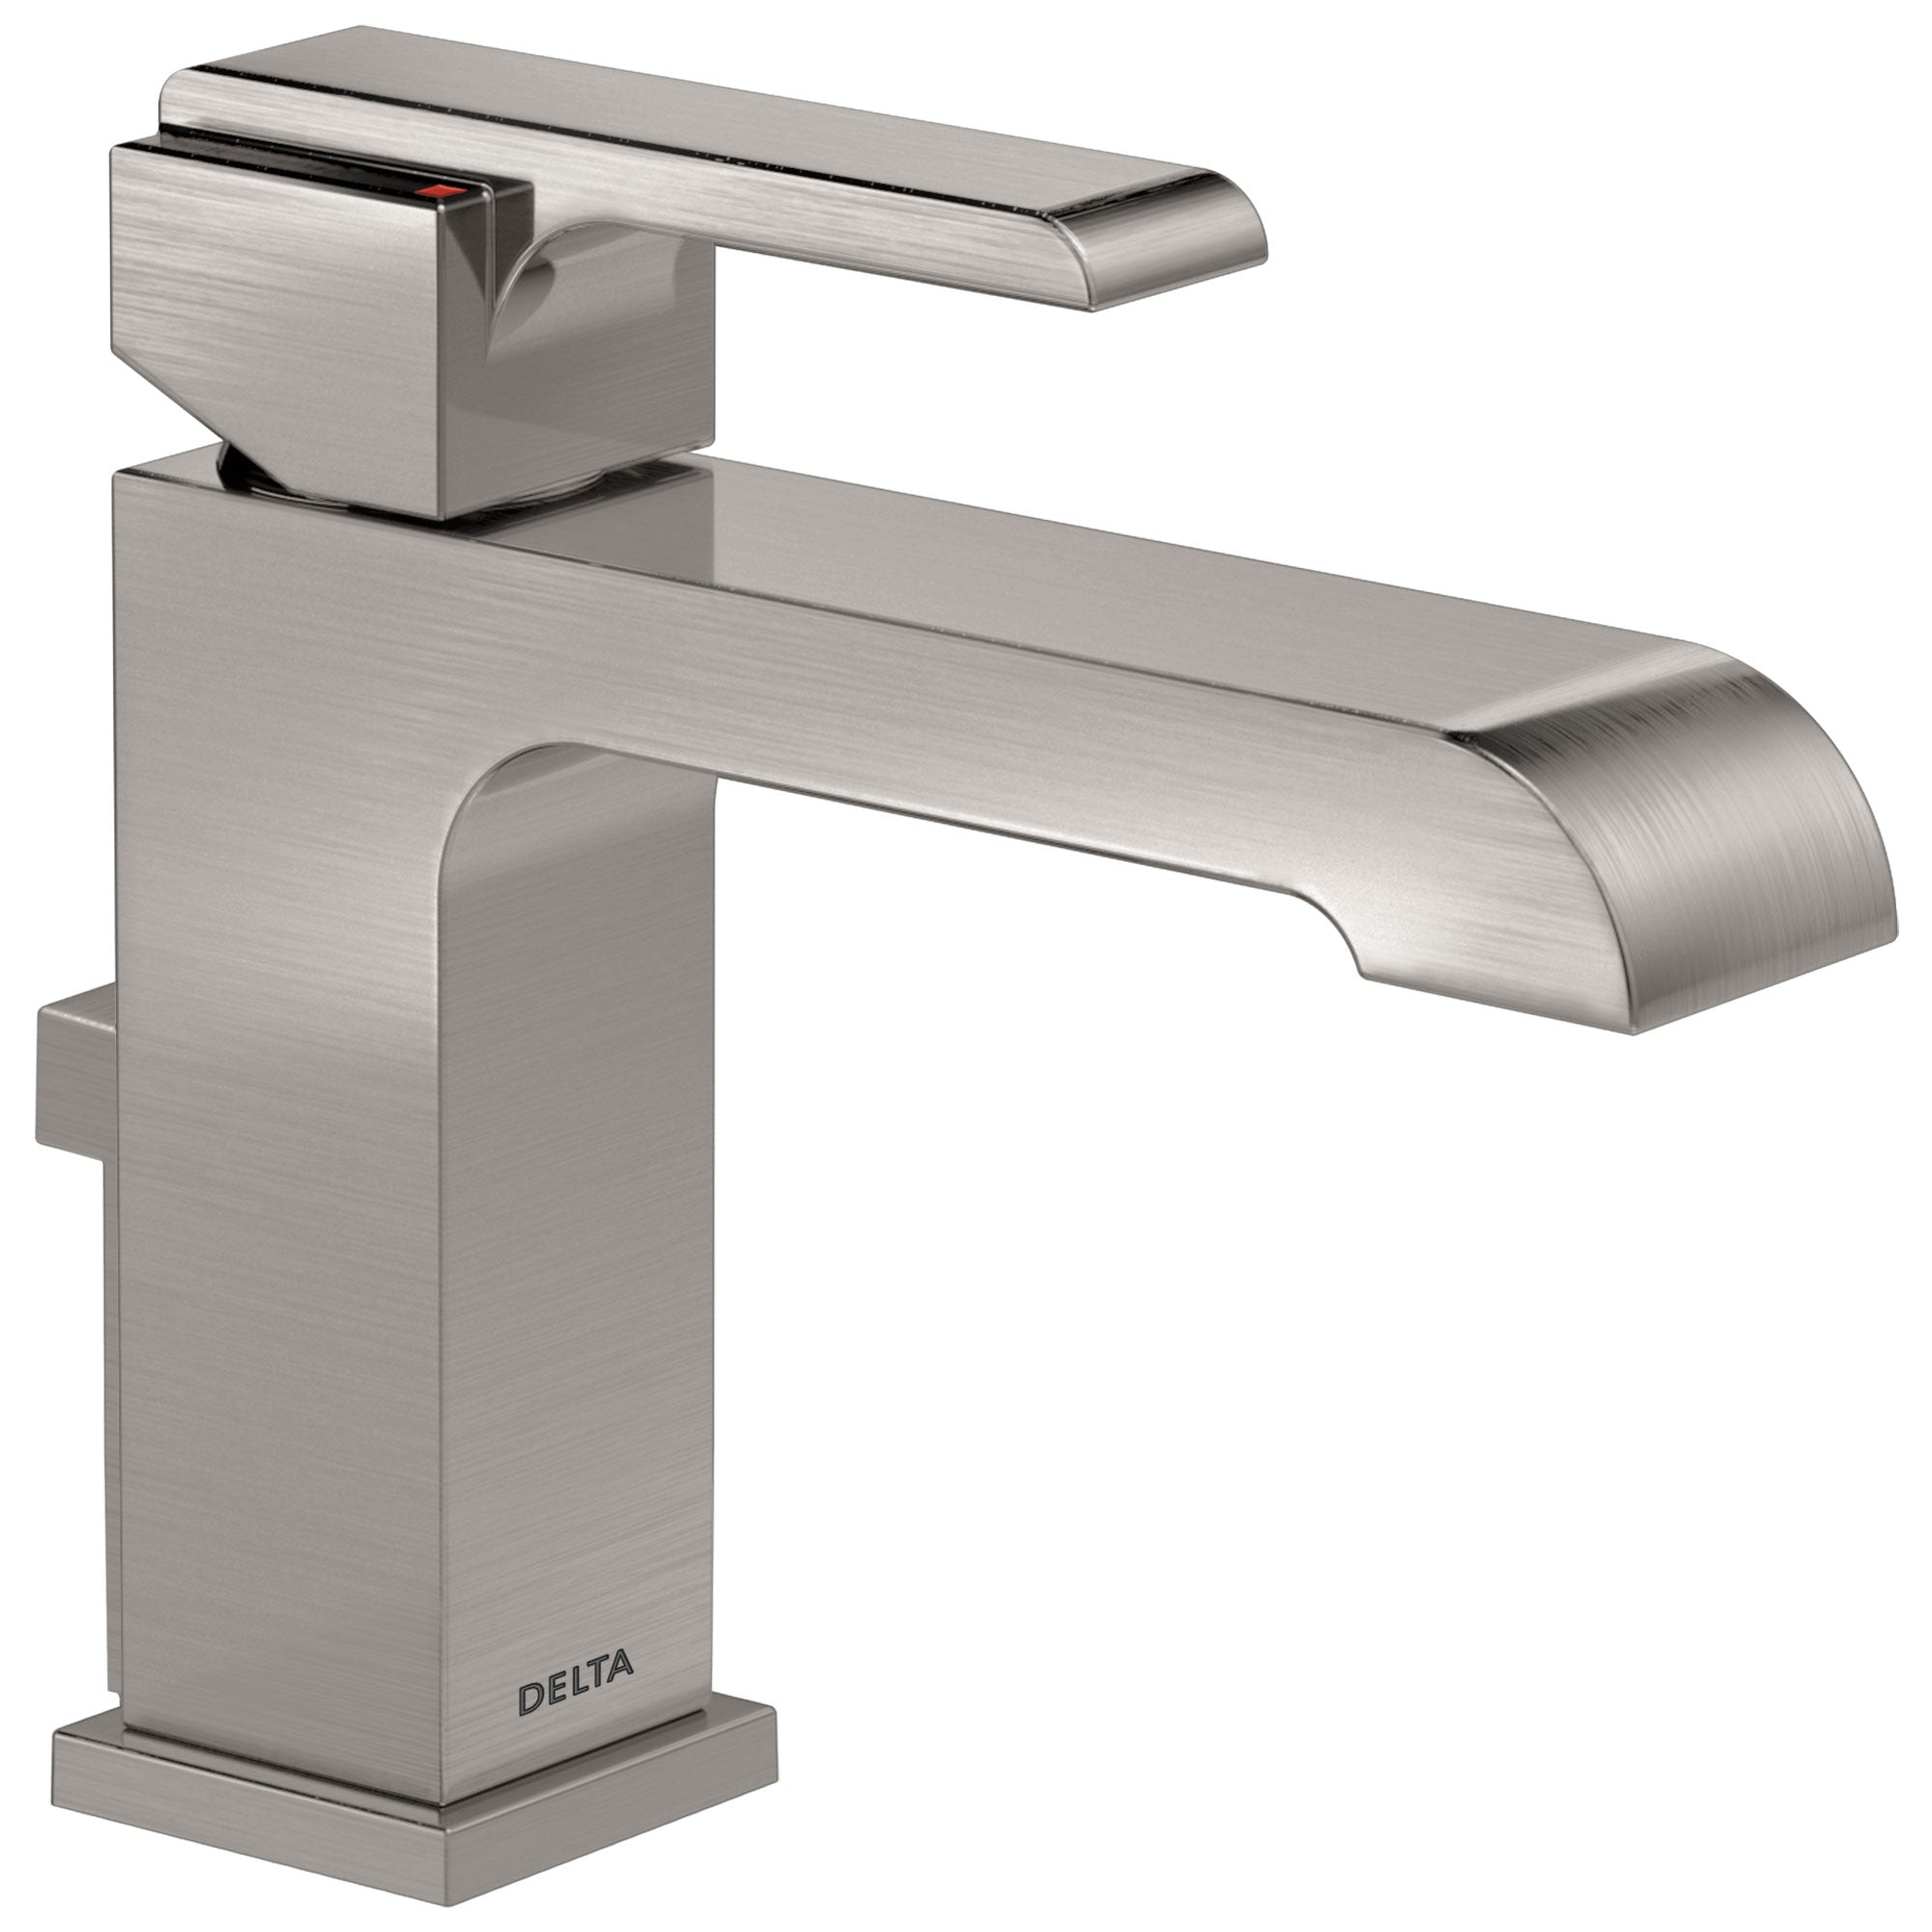 Delta Ara Collection Stainless Steel Finish Single Handle Bathroom Lavatory Sink Faucet with Metal Pop-Up Drain D567LFSSMPU